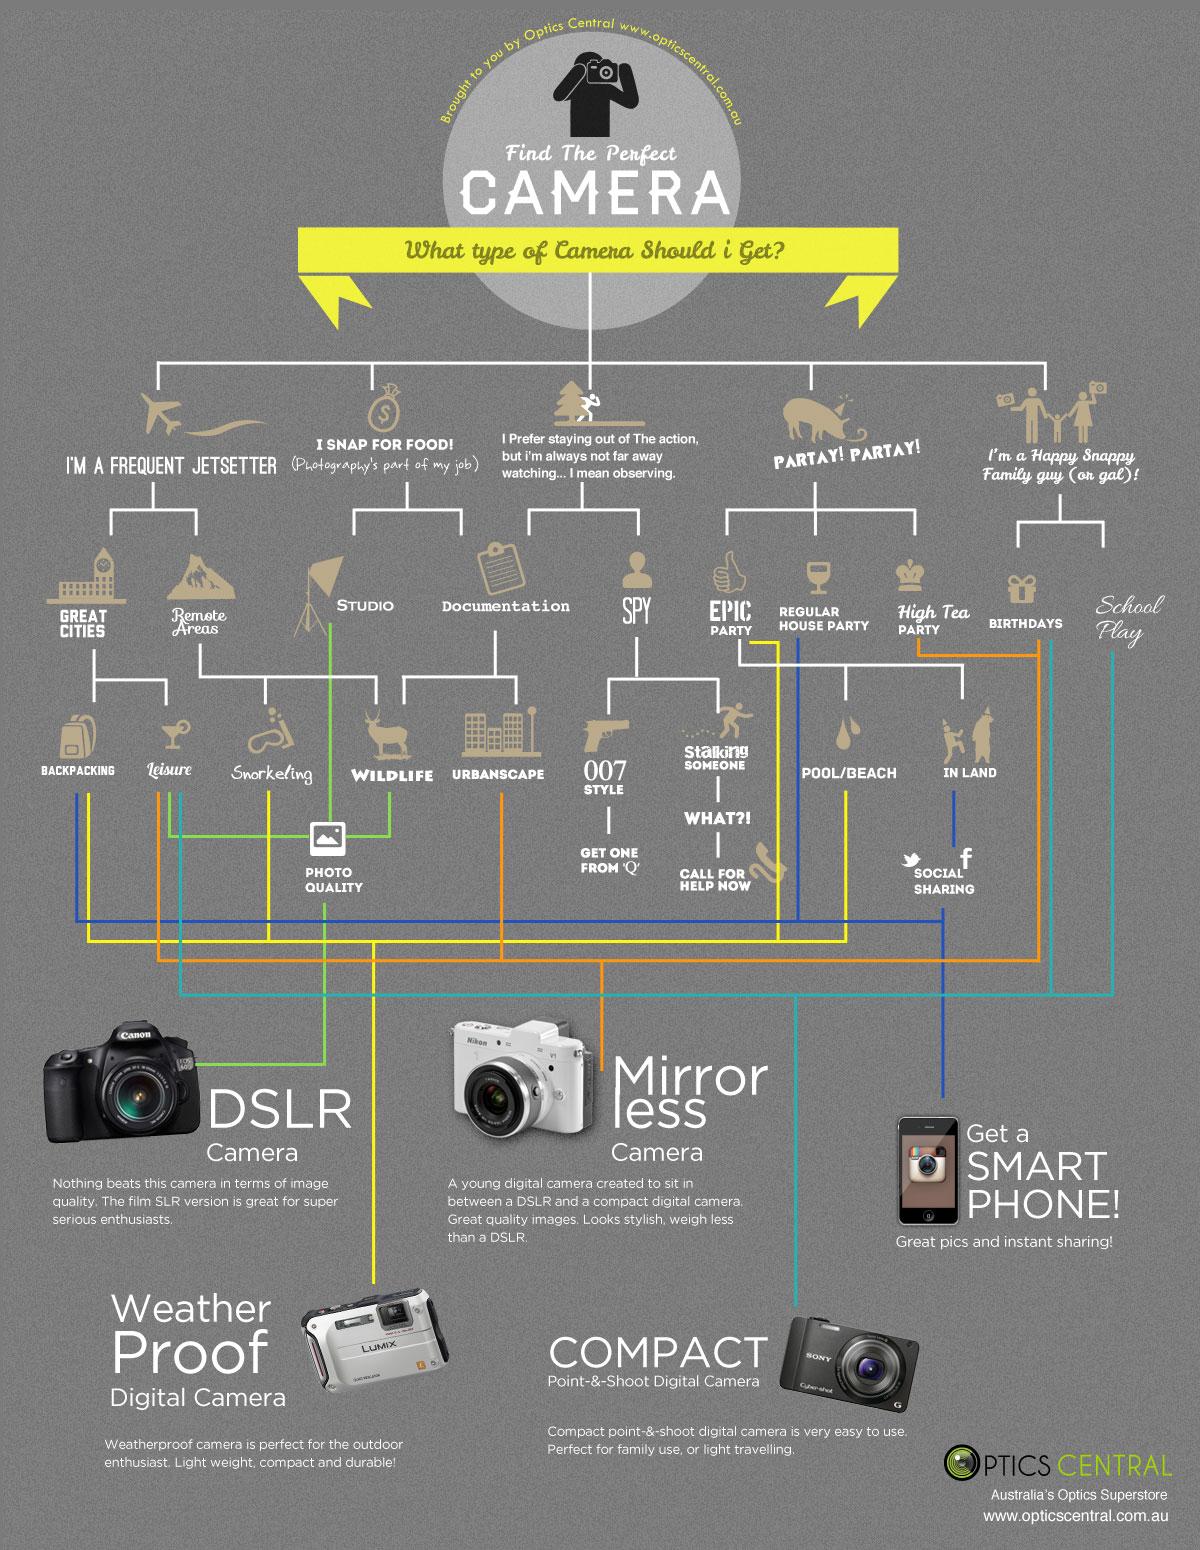 Guide for Choosing Camera